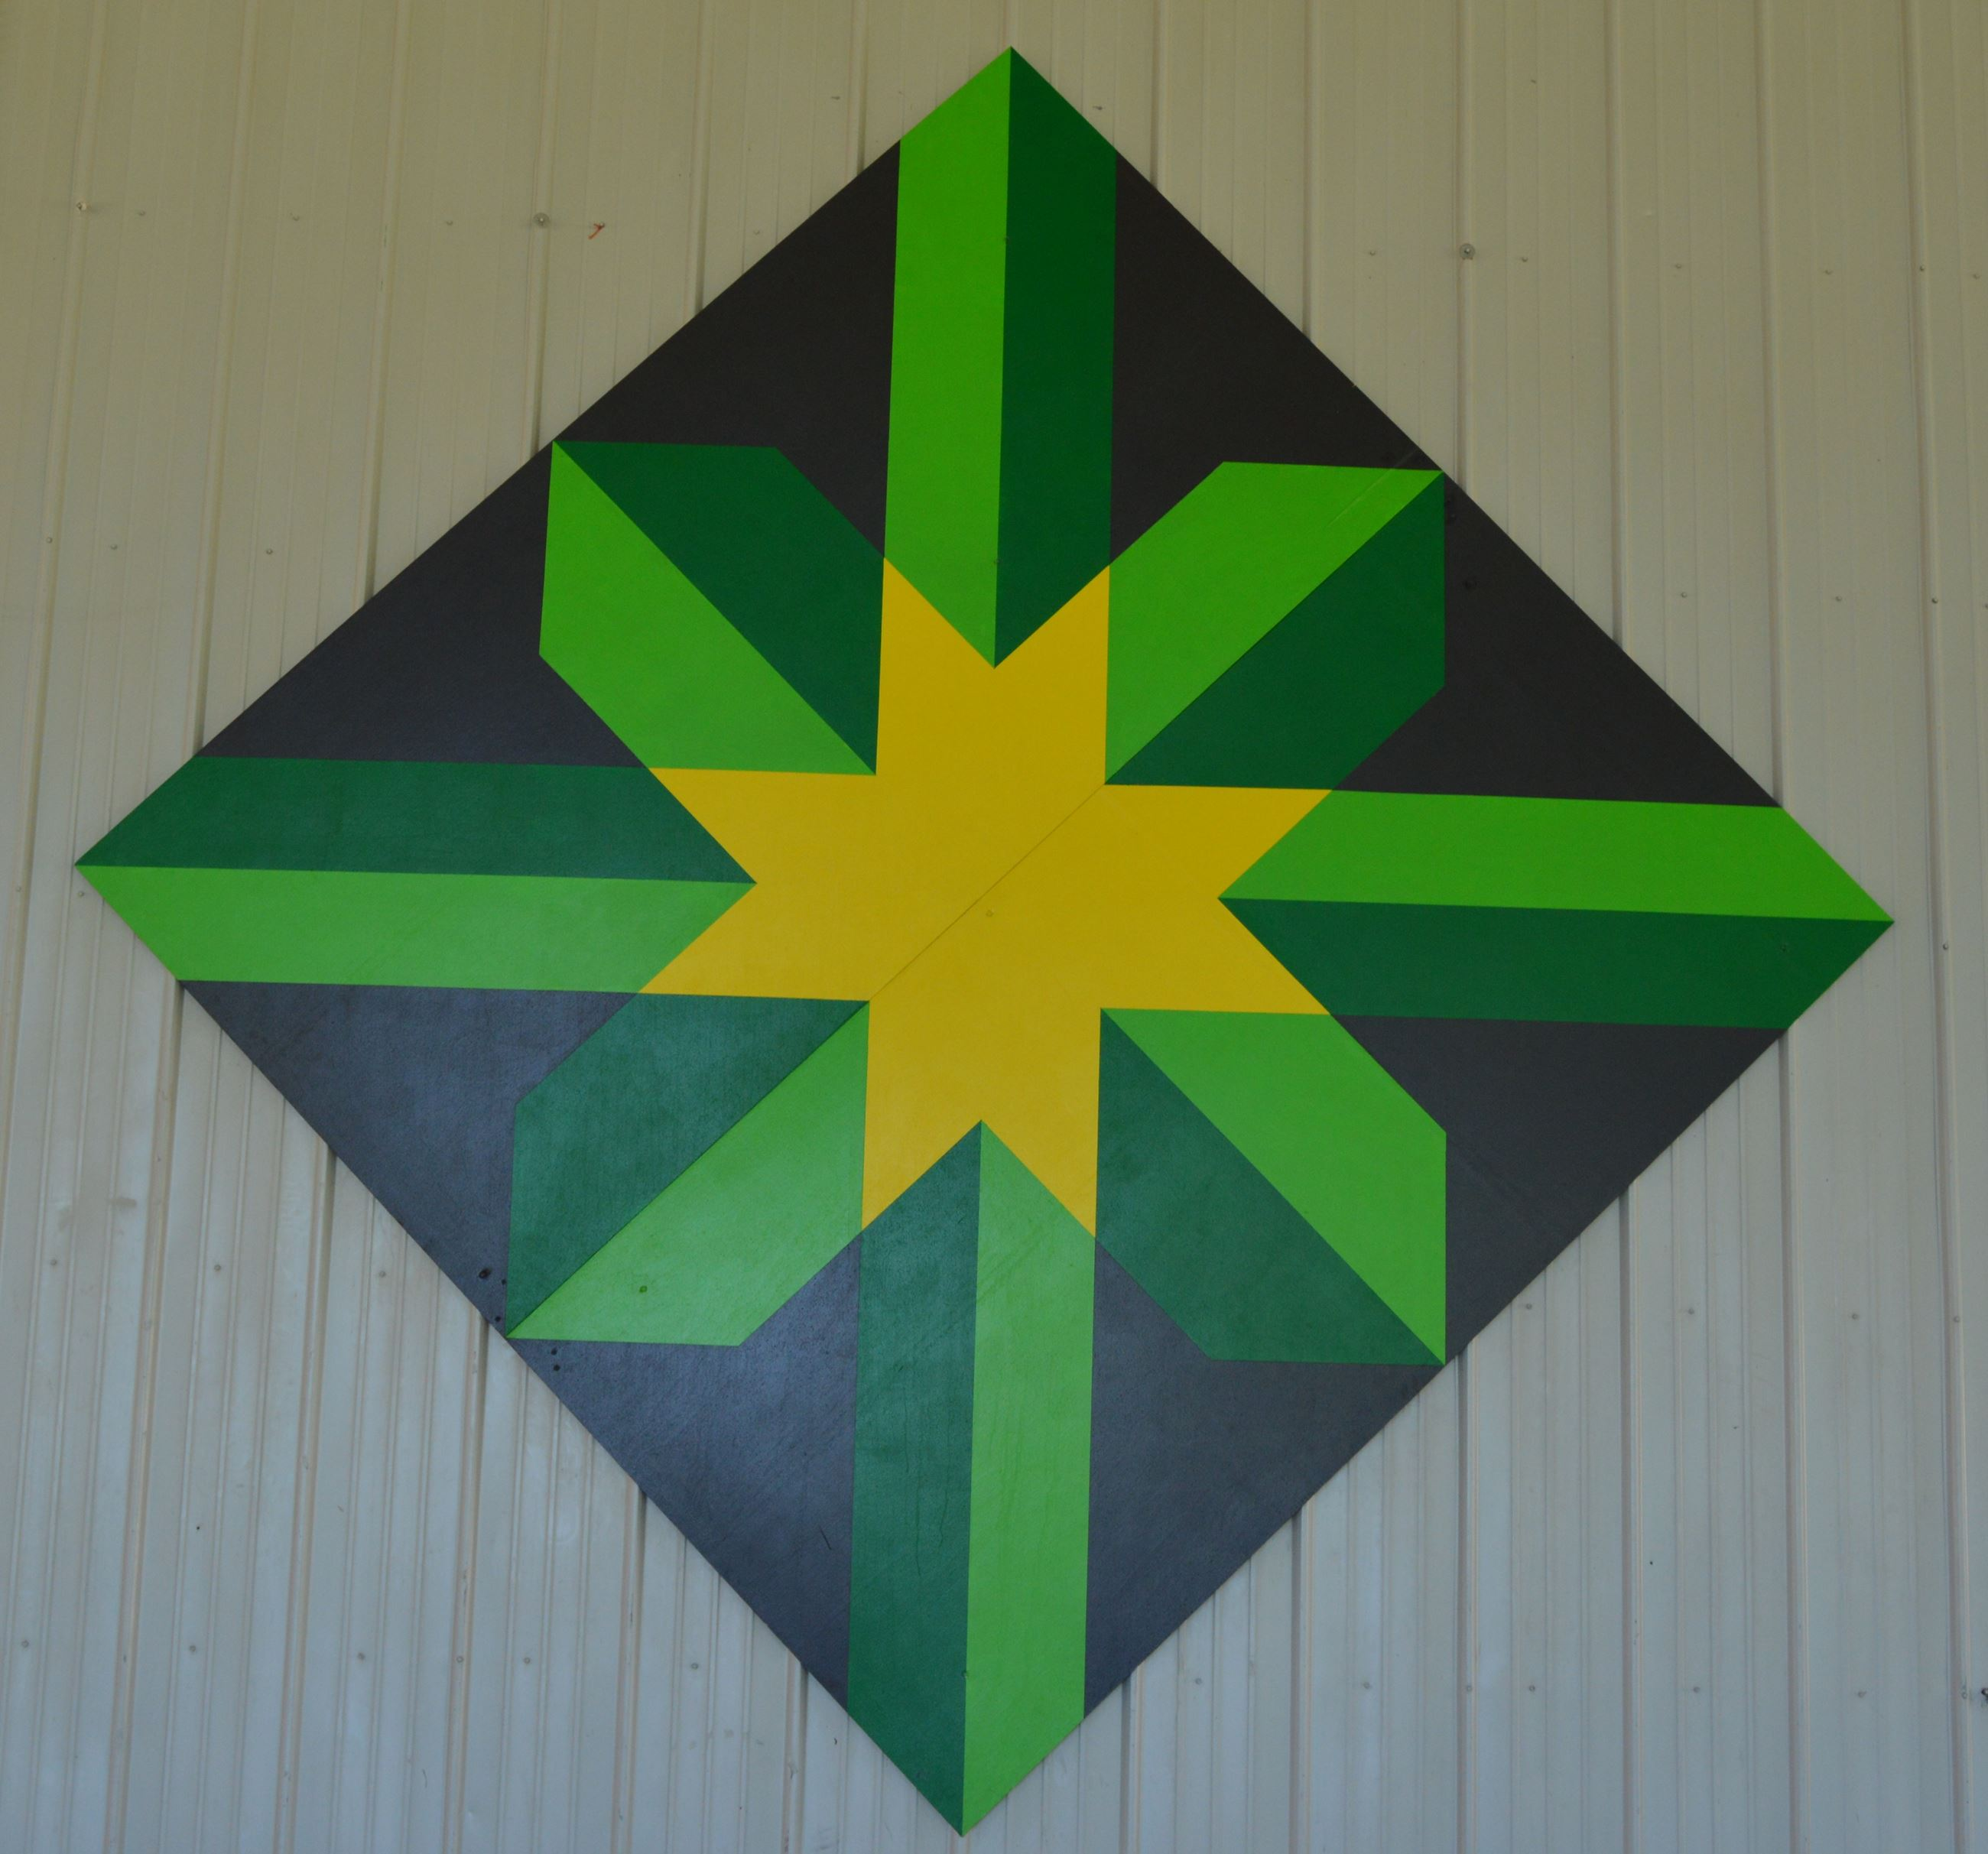 Barn quilt in a diamond shape on the side of a white steel wall. Pattern includes green intersecting